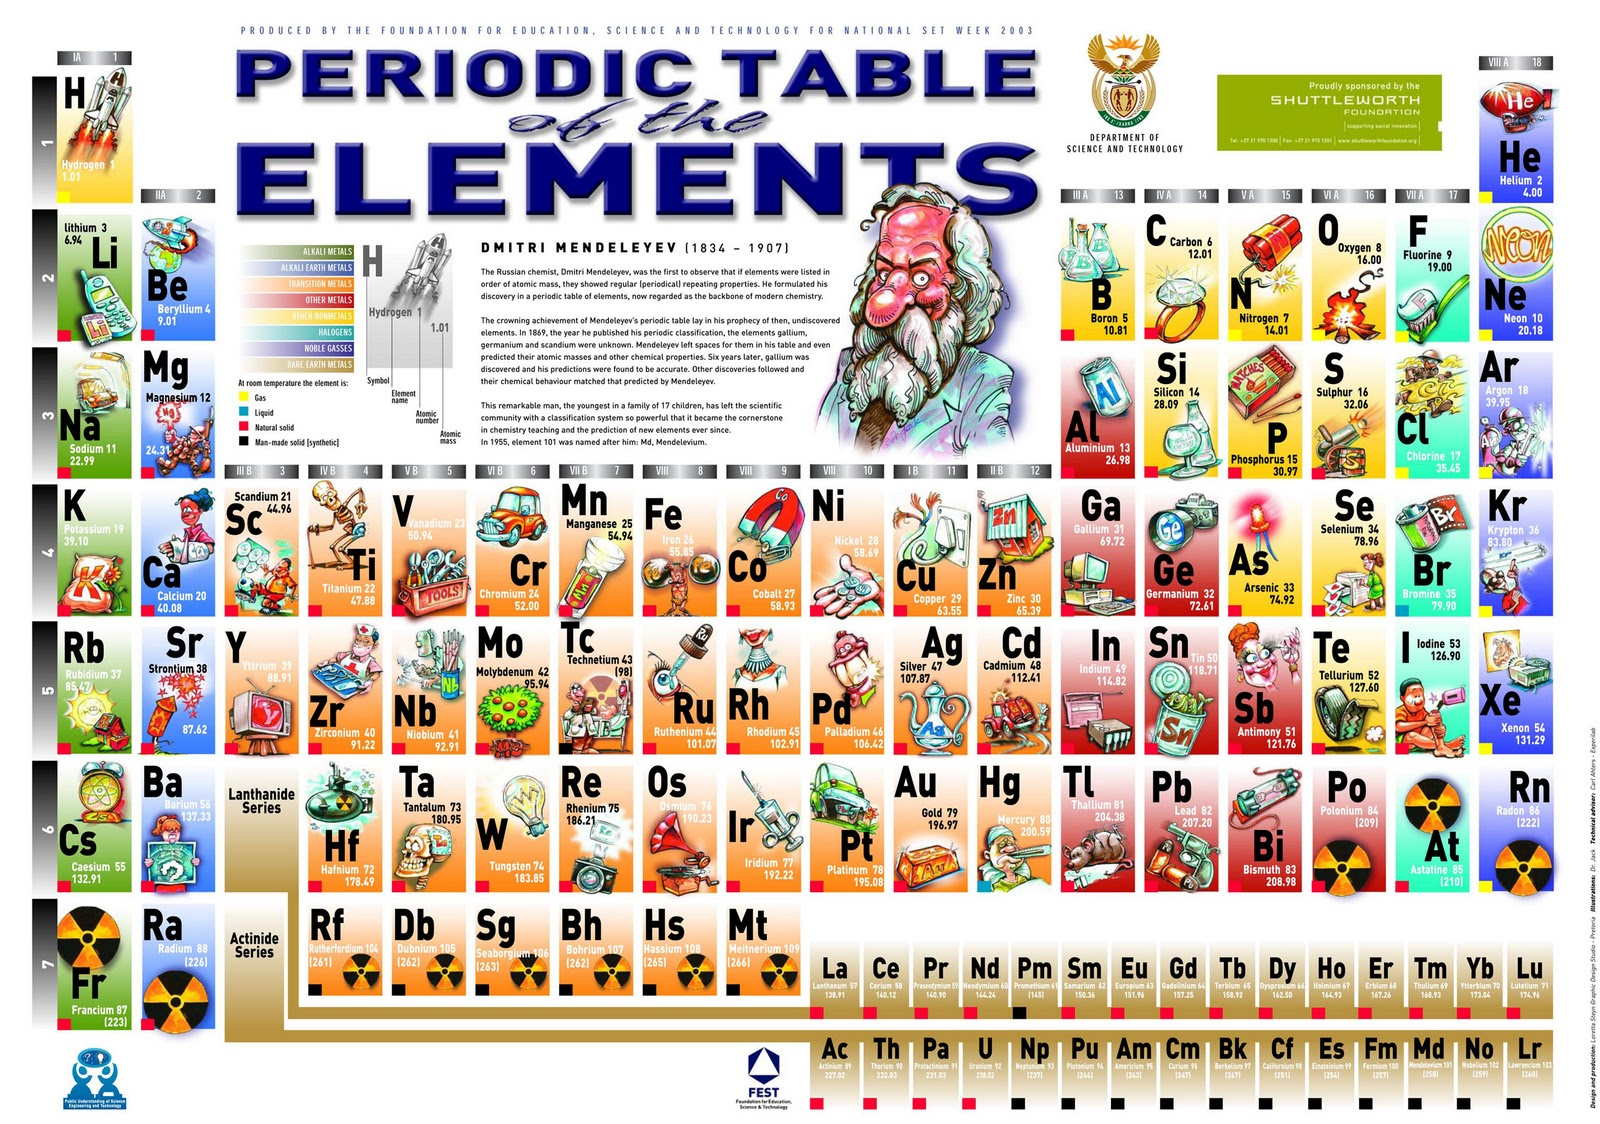 Jingga periodic table of elements of a new two livermorium and flerovium will be one hundred elements to 116 and 114 and has been officially accepted in the table since last june in fact this element gamestrikefo Image collections